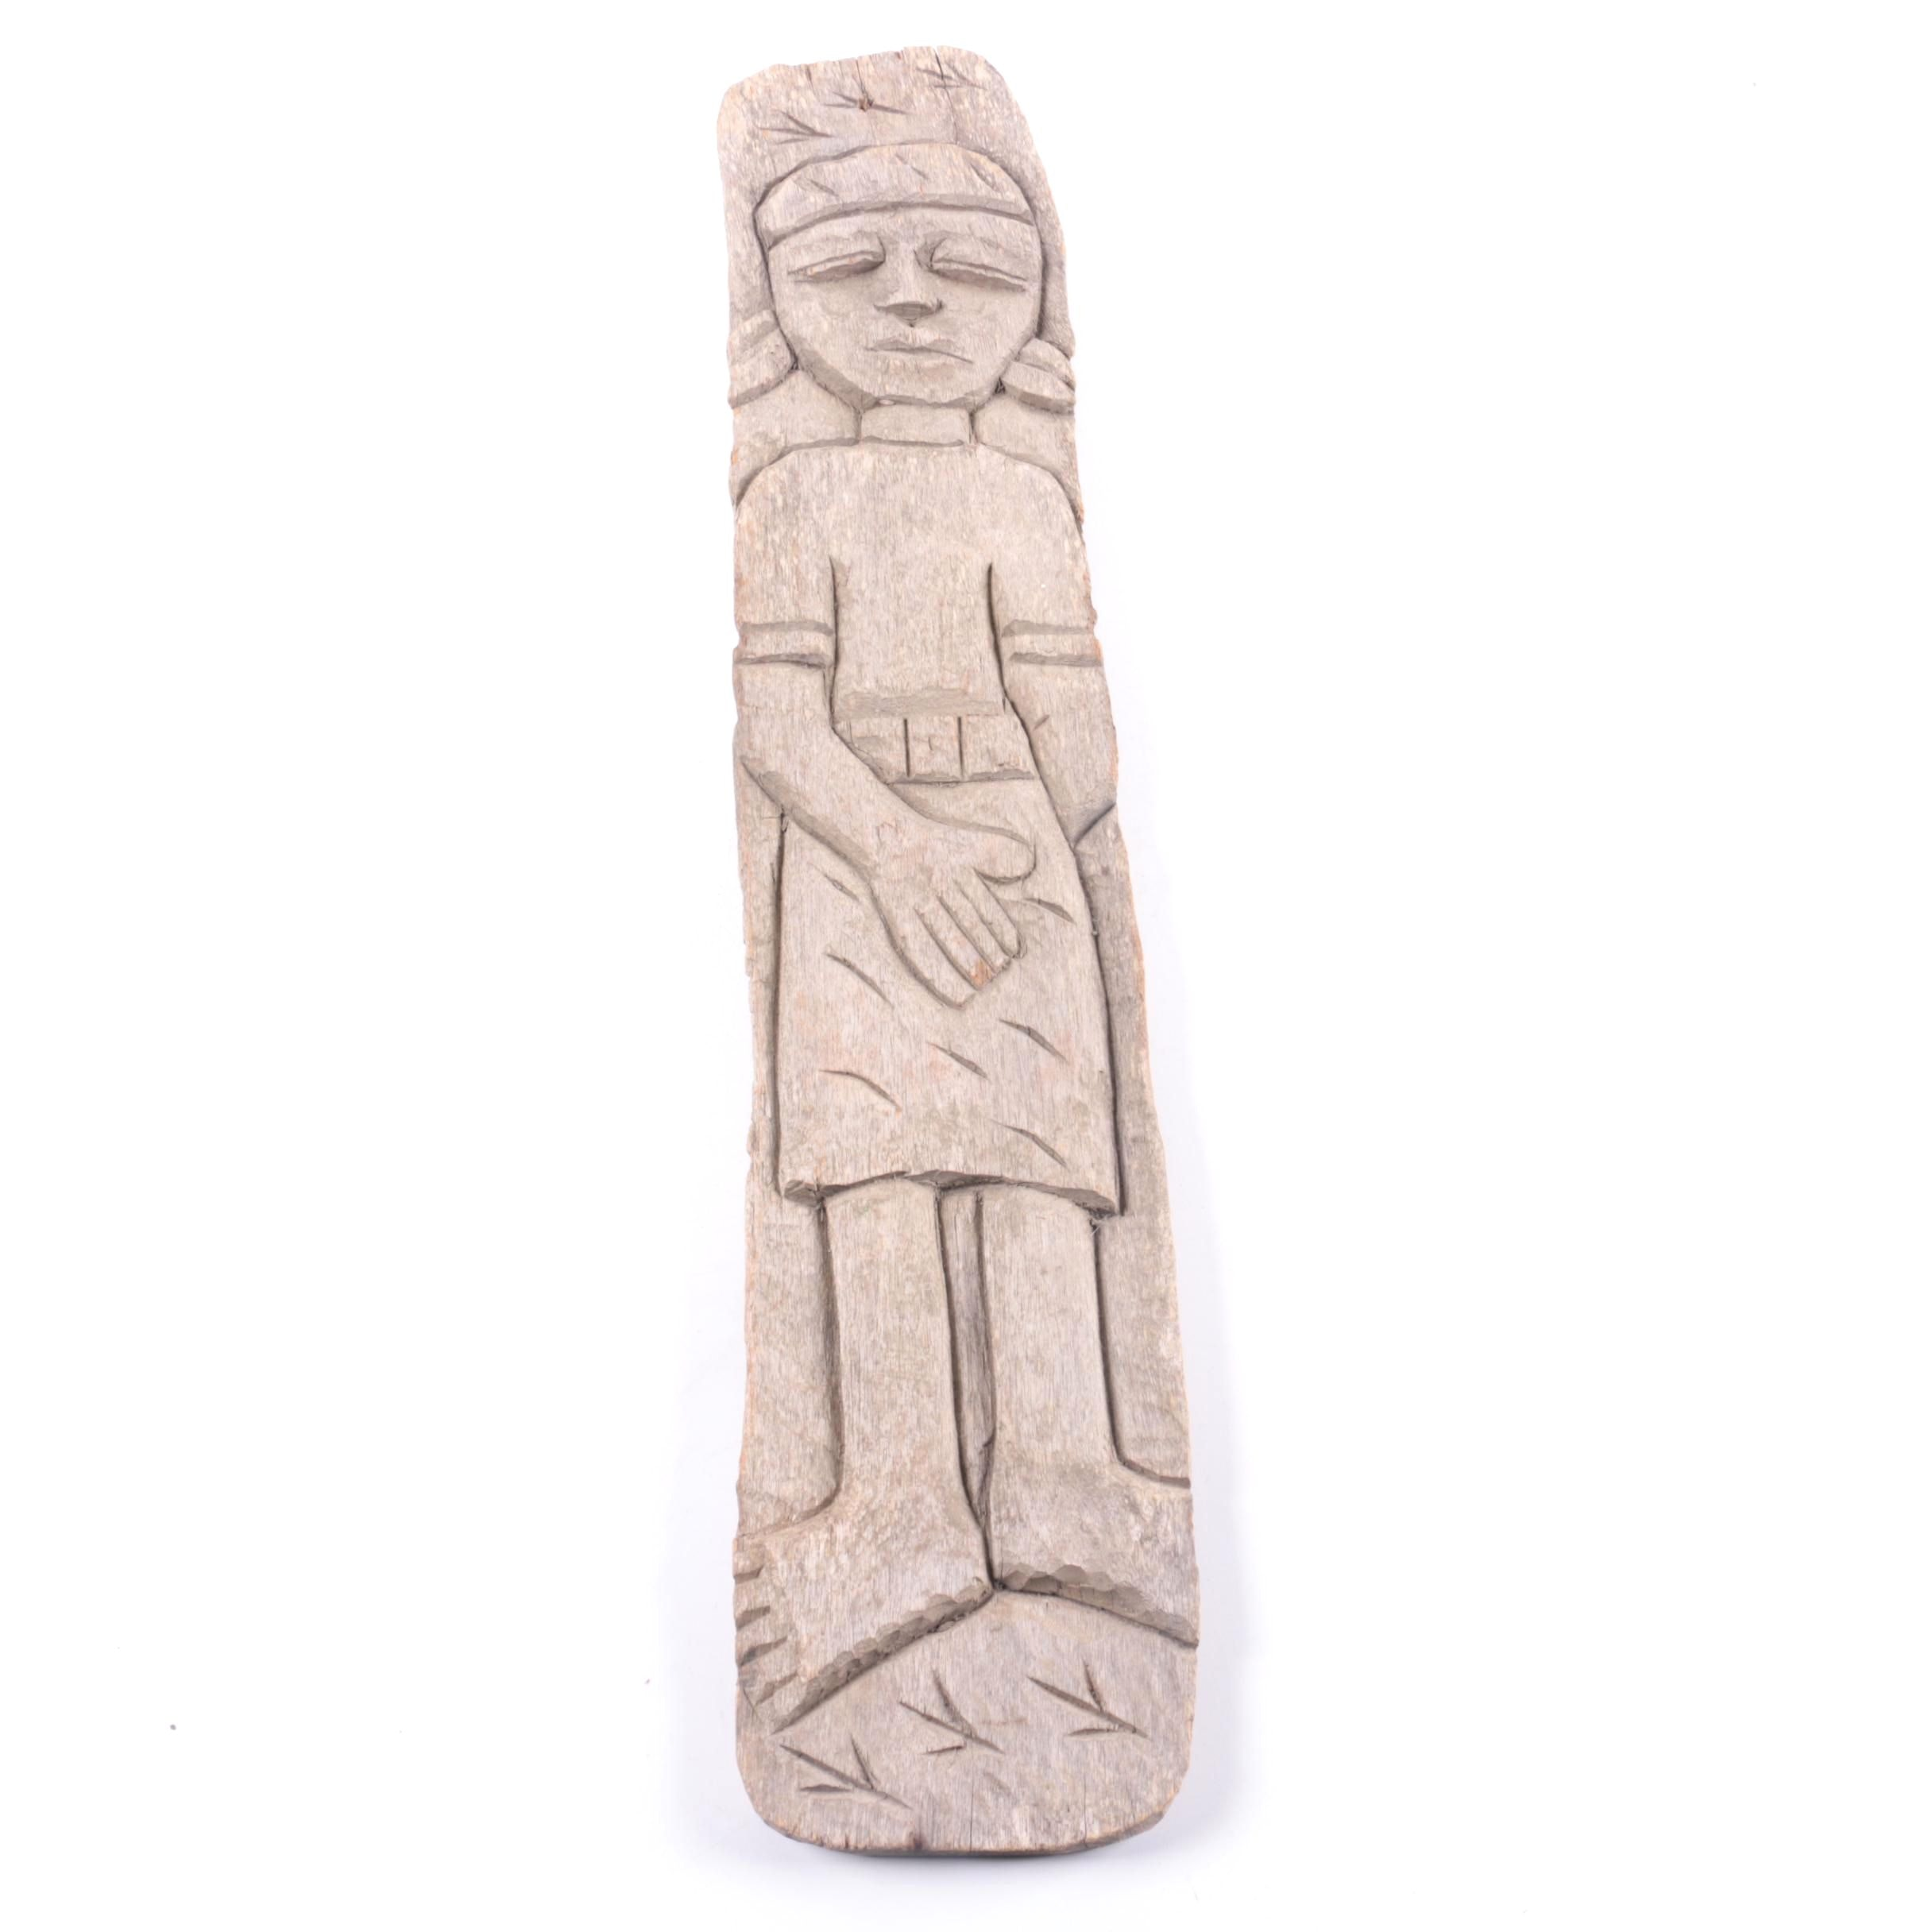 Wooden Carving of a Girl